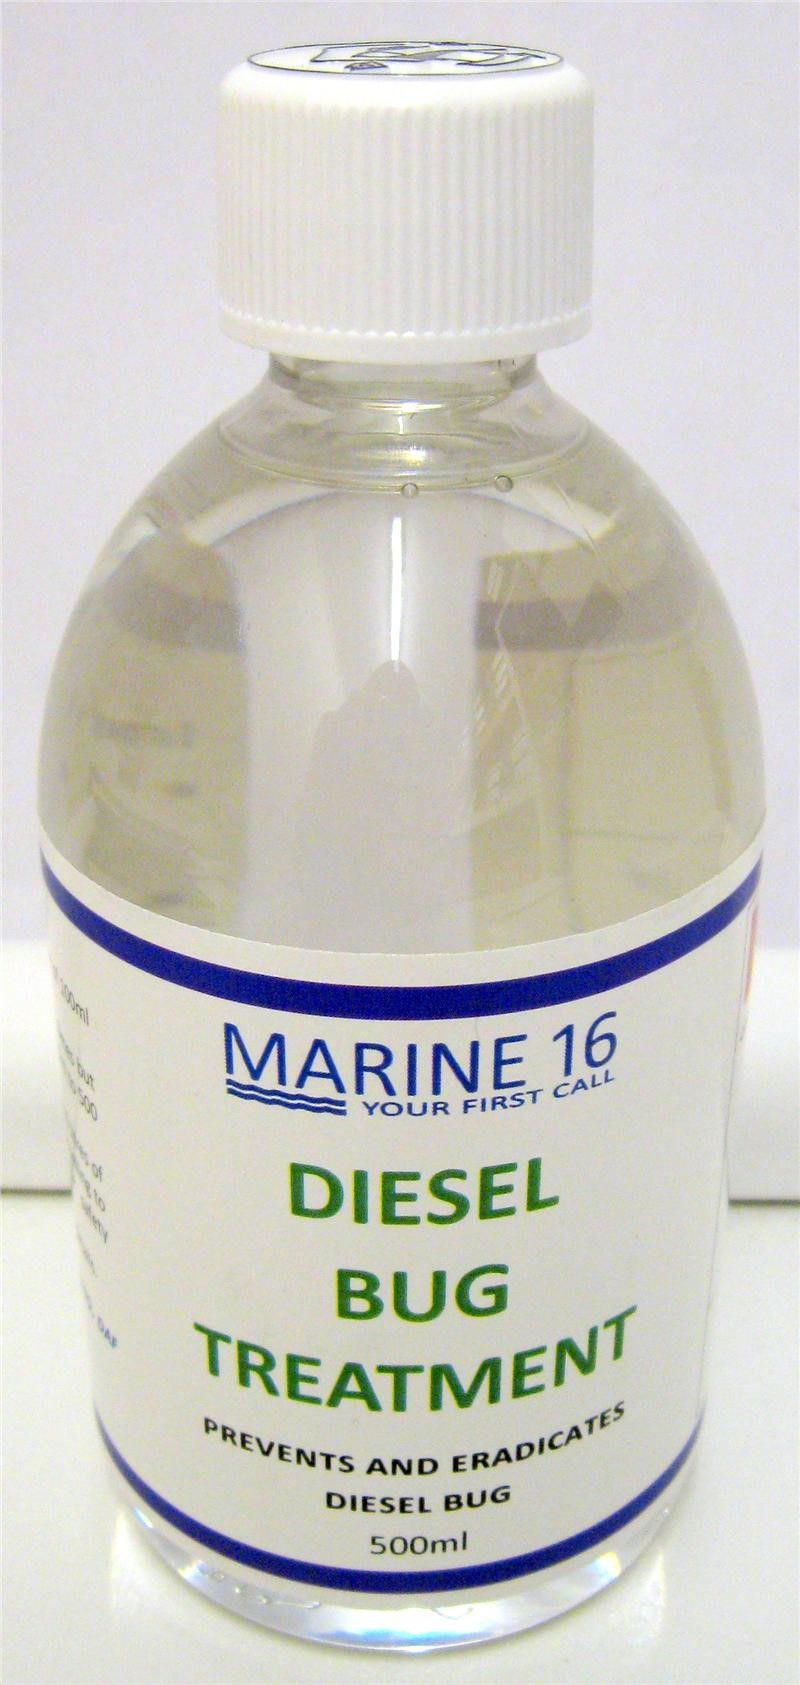 Marine 16 Diesel Bug Treatment 500ml Bottle